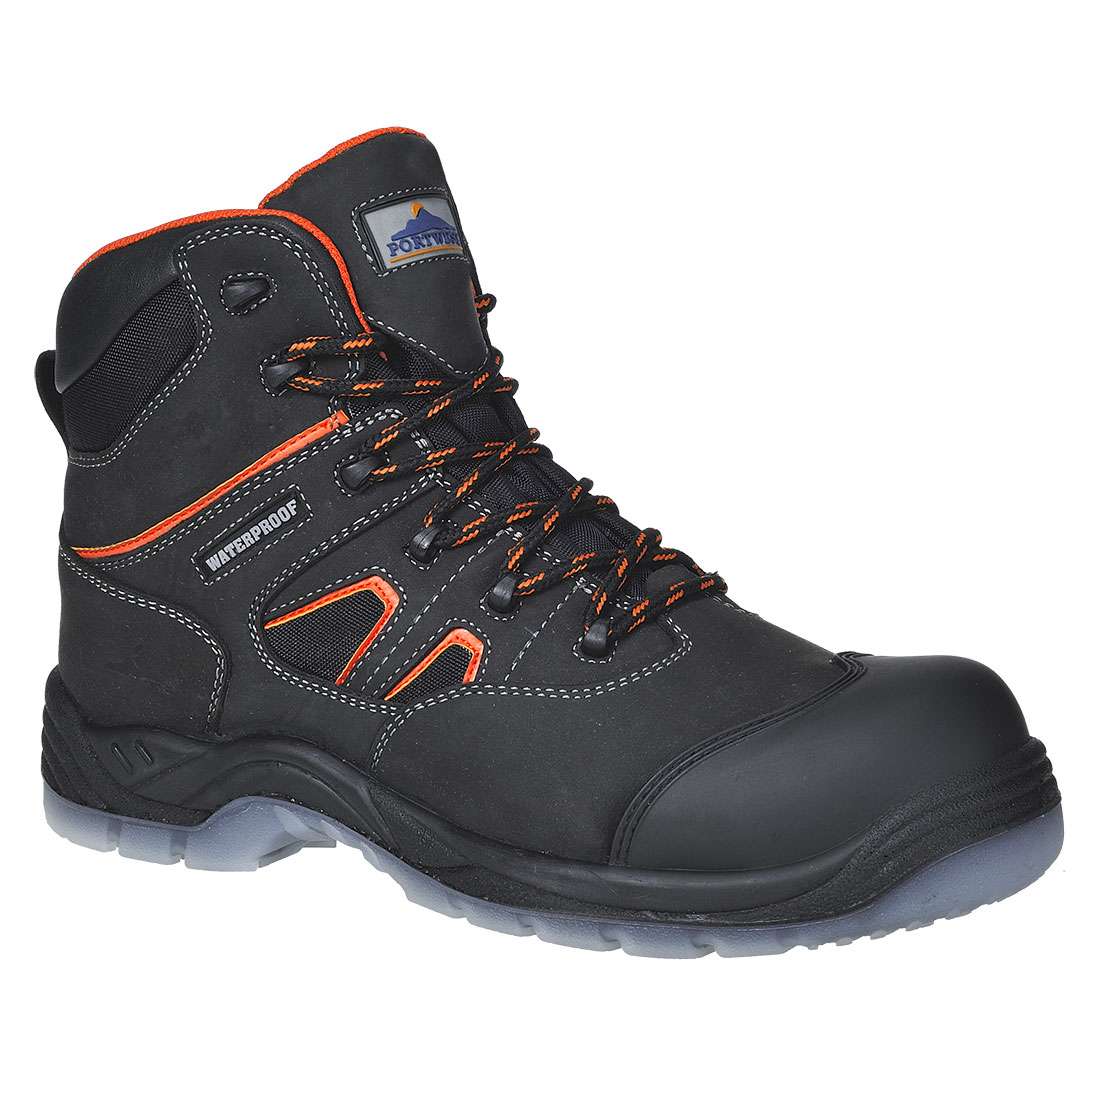 FC57 - Bocanc Portwest Compositelite All Weather Boot S3 WR Negru